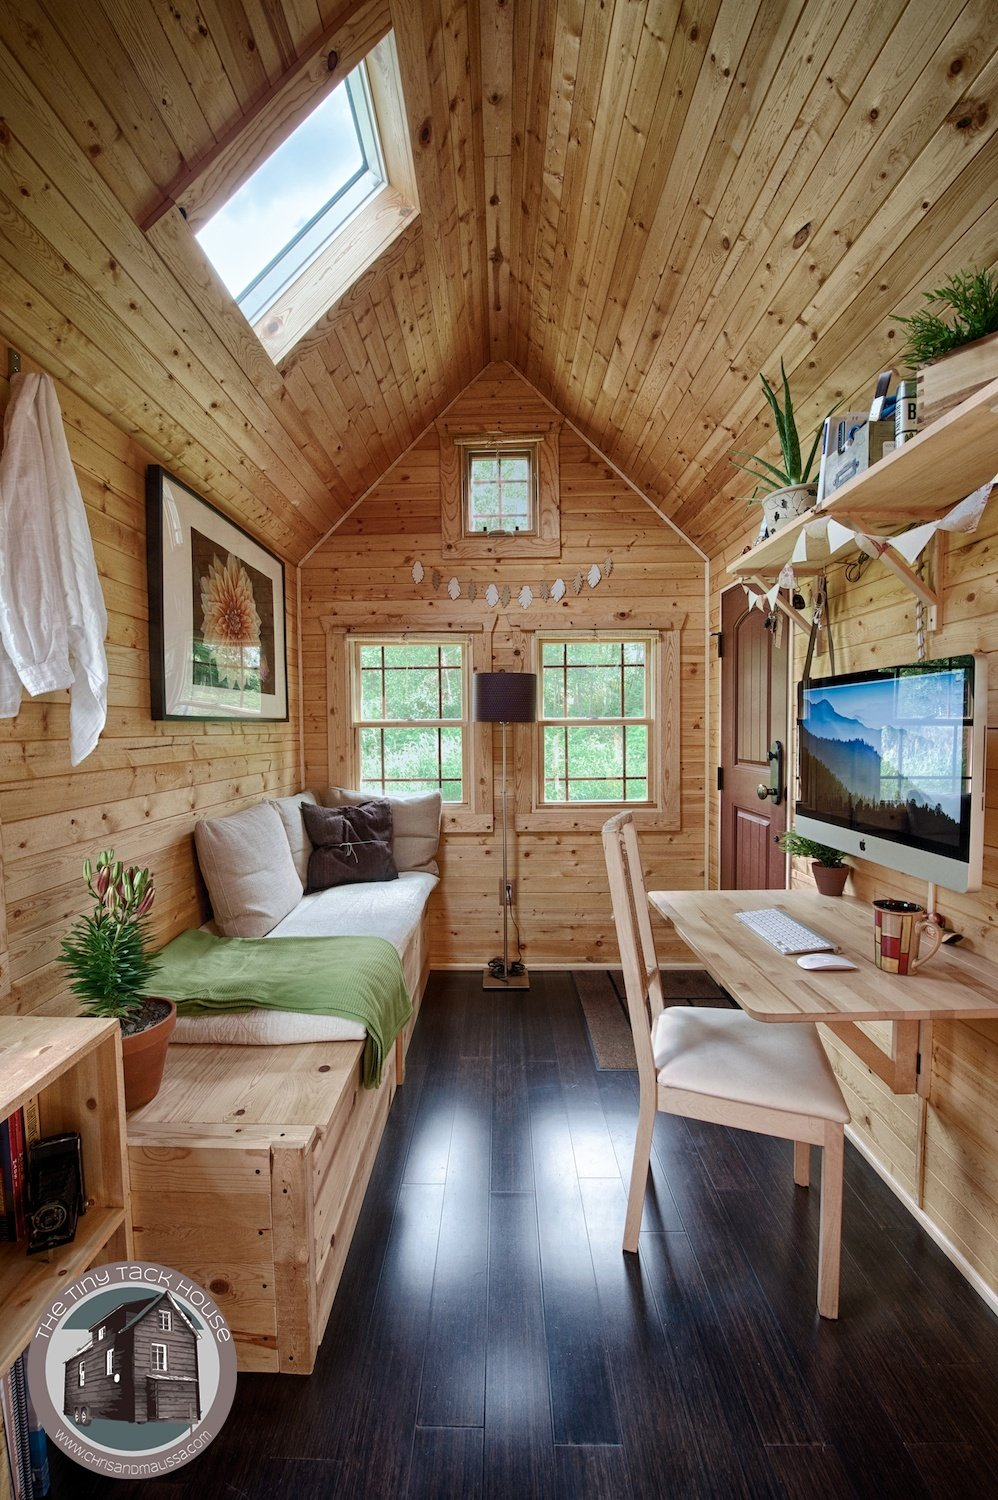 image via tiny tack house the tiny tack house